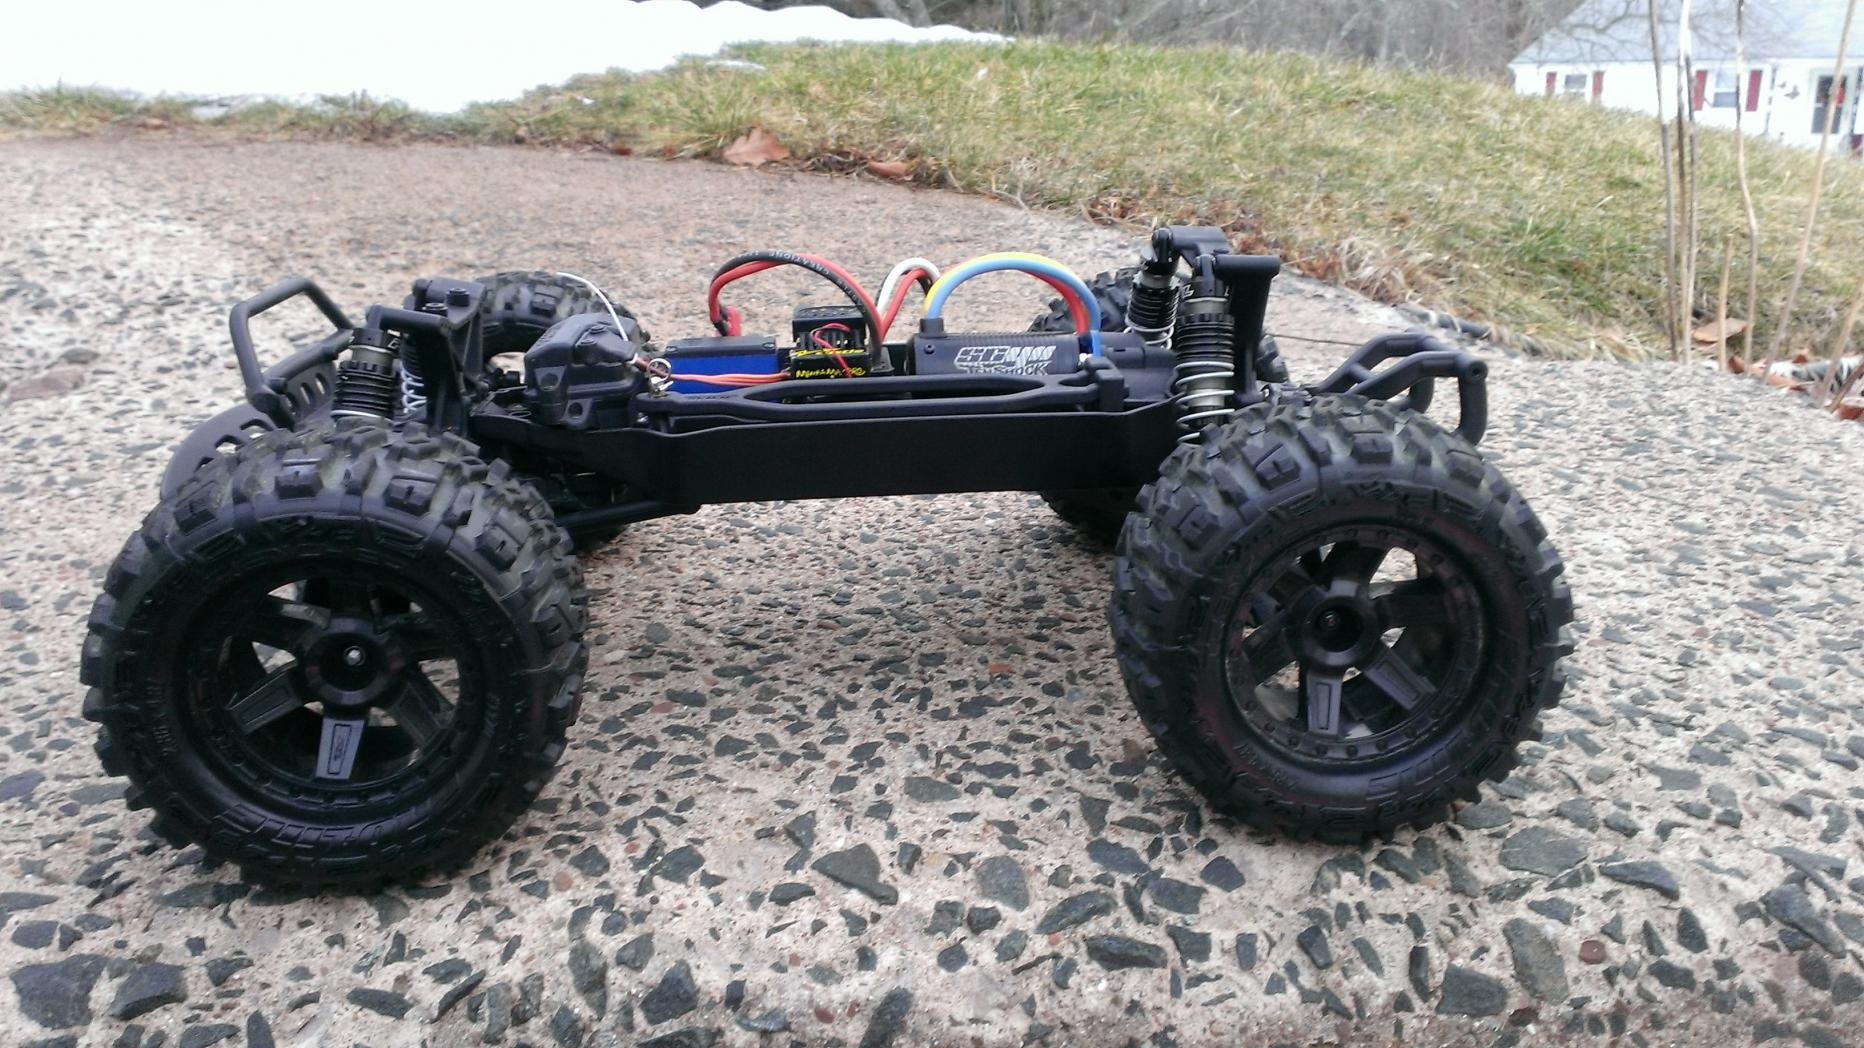 859312 Fs Tekno Sct410 Hw Sct Pro Tenshock 4000kv Print as well Kevs Bench Axial Yeti Xl Build Done 2 furthermore 83 besides Traxxas St ede 4x4 Tr Uggy further Hotwire. on tekin rx8 motor